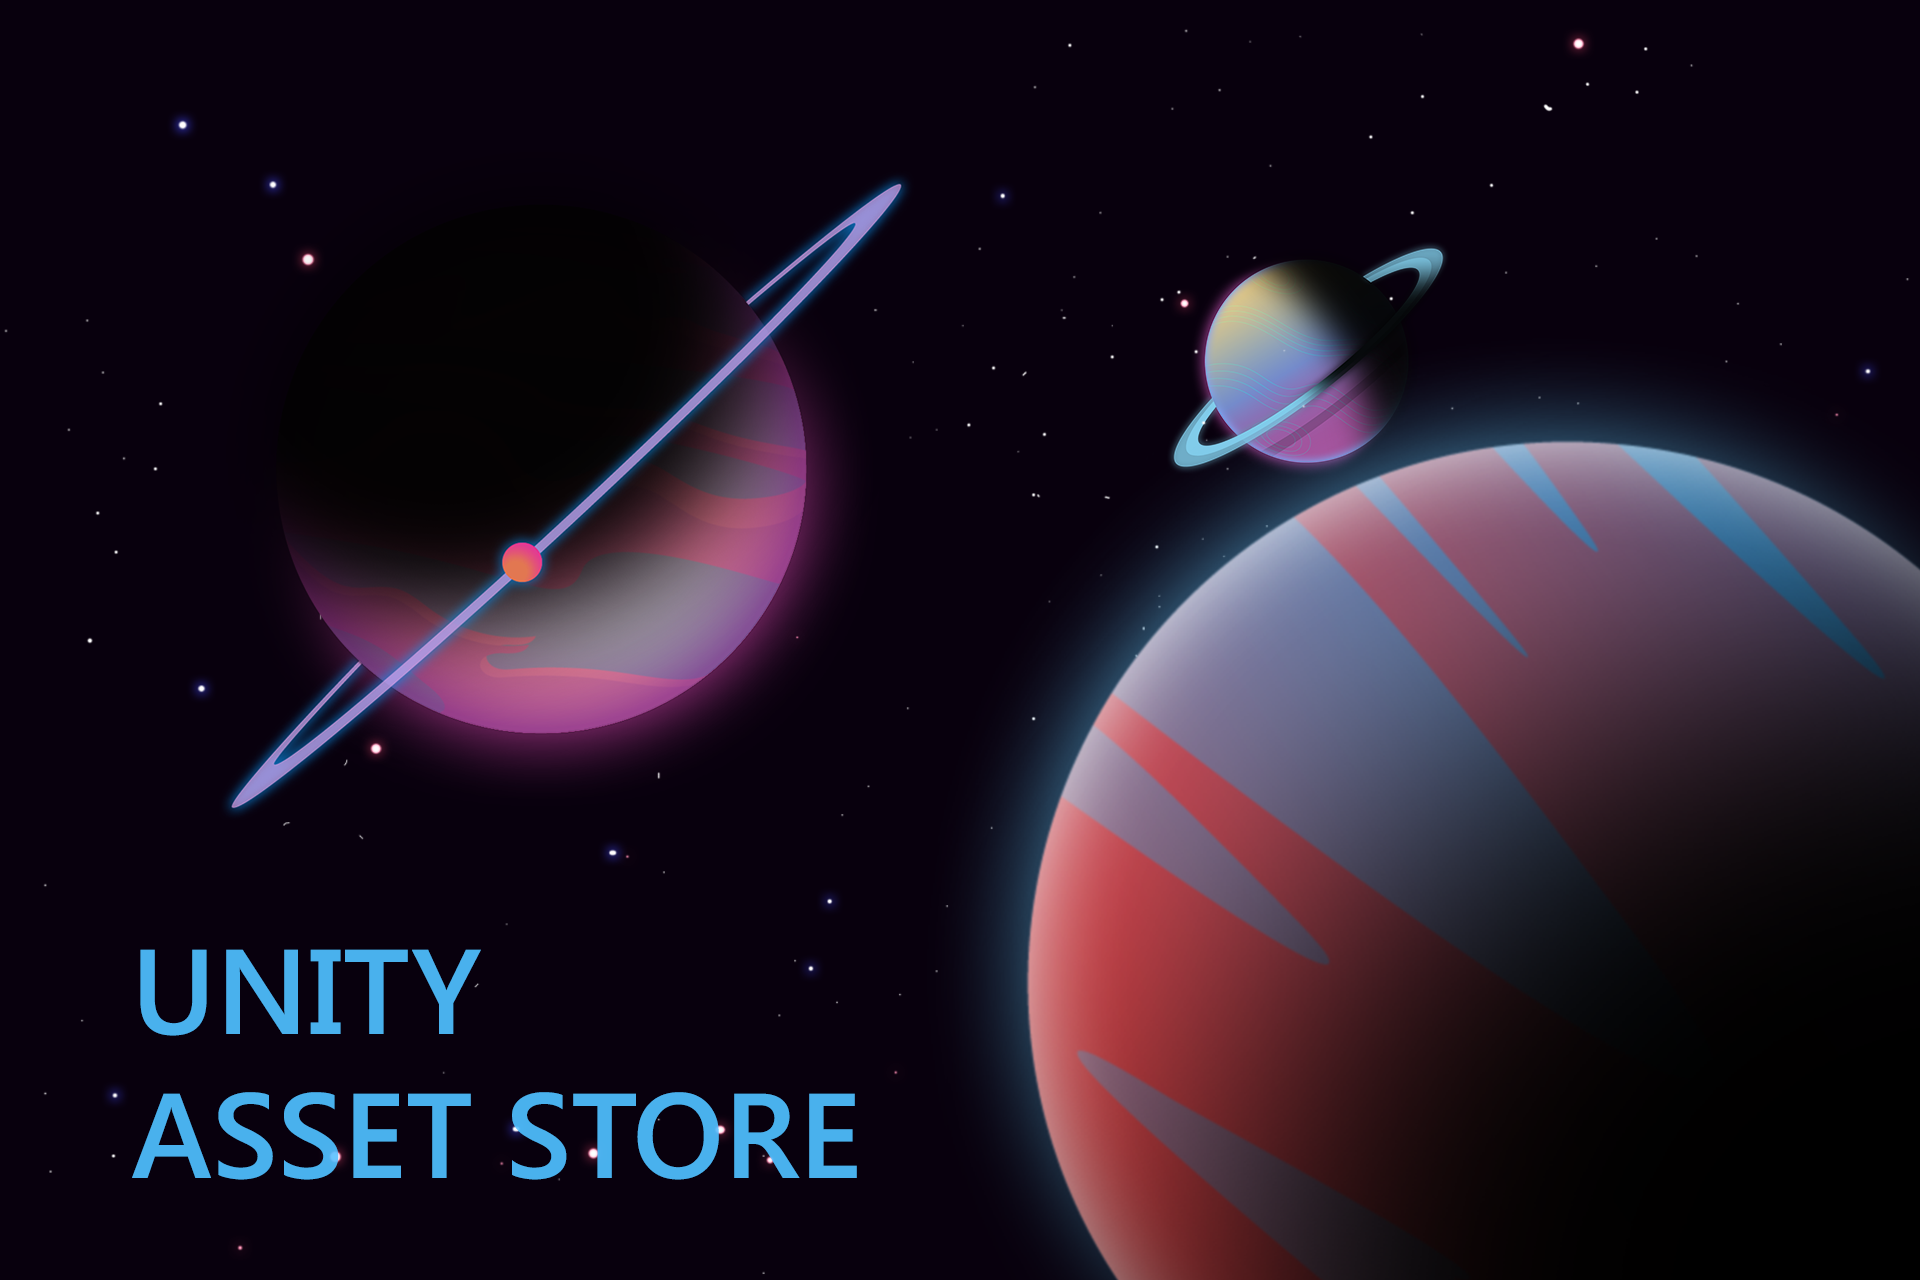 Planets with Space Background 2.0 - Asset Store Project